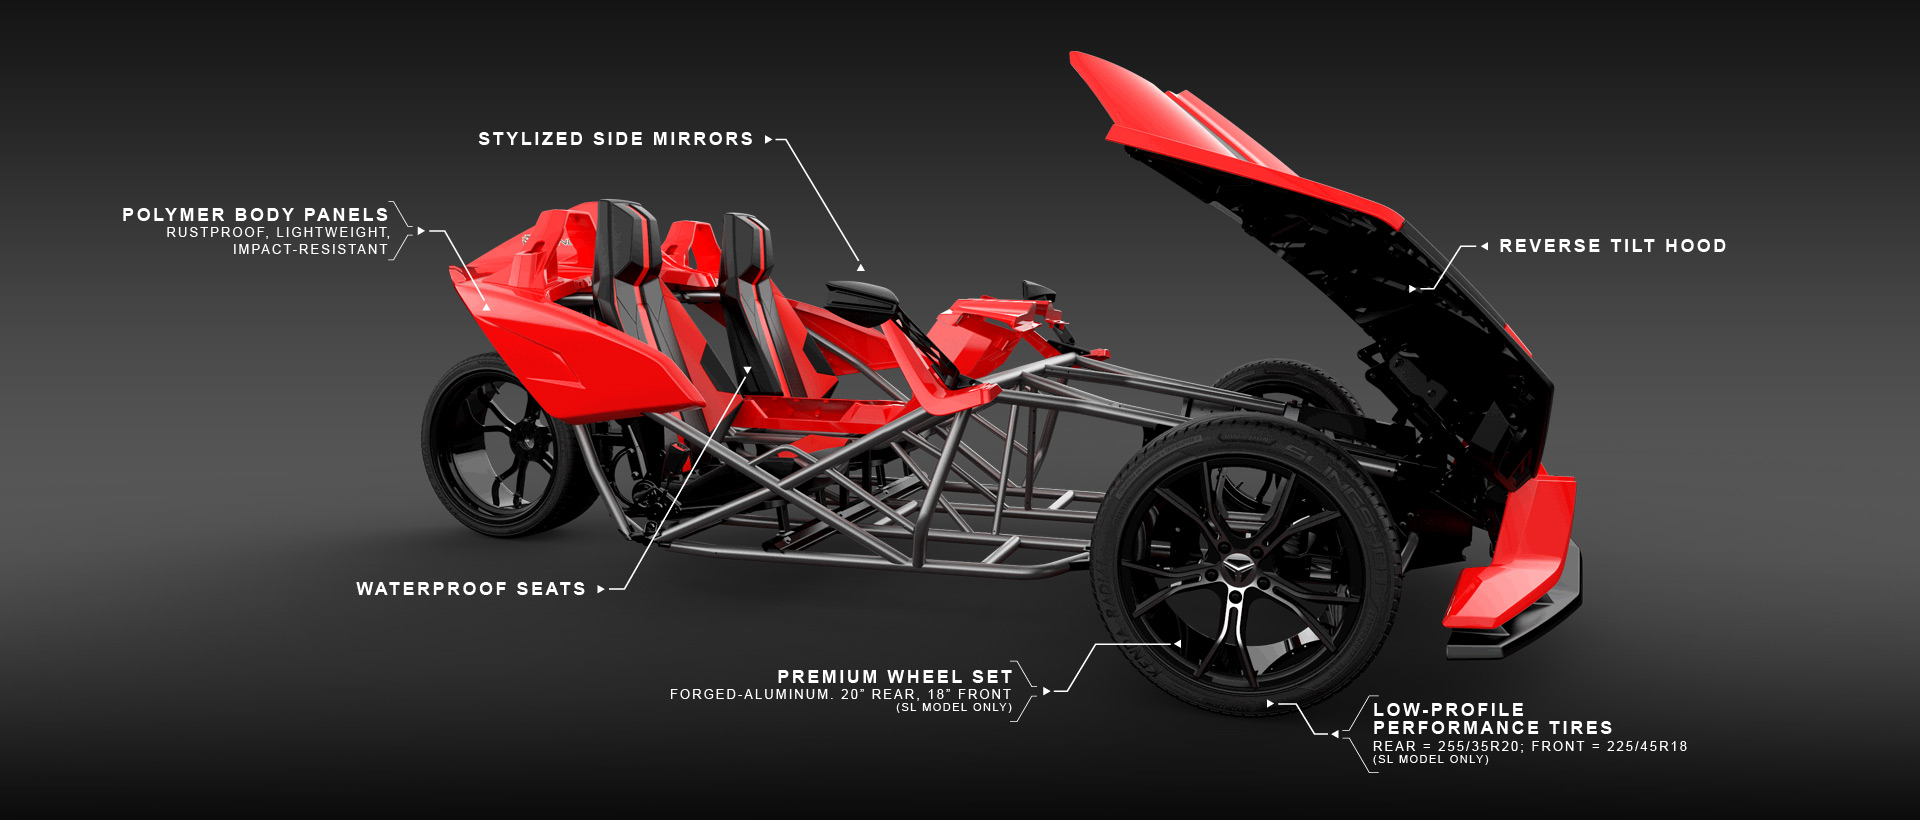 Polaris Slingshot Frame And Body Panels Car Body Design